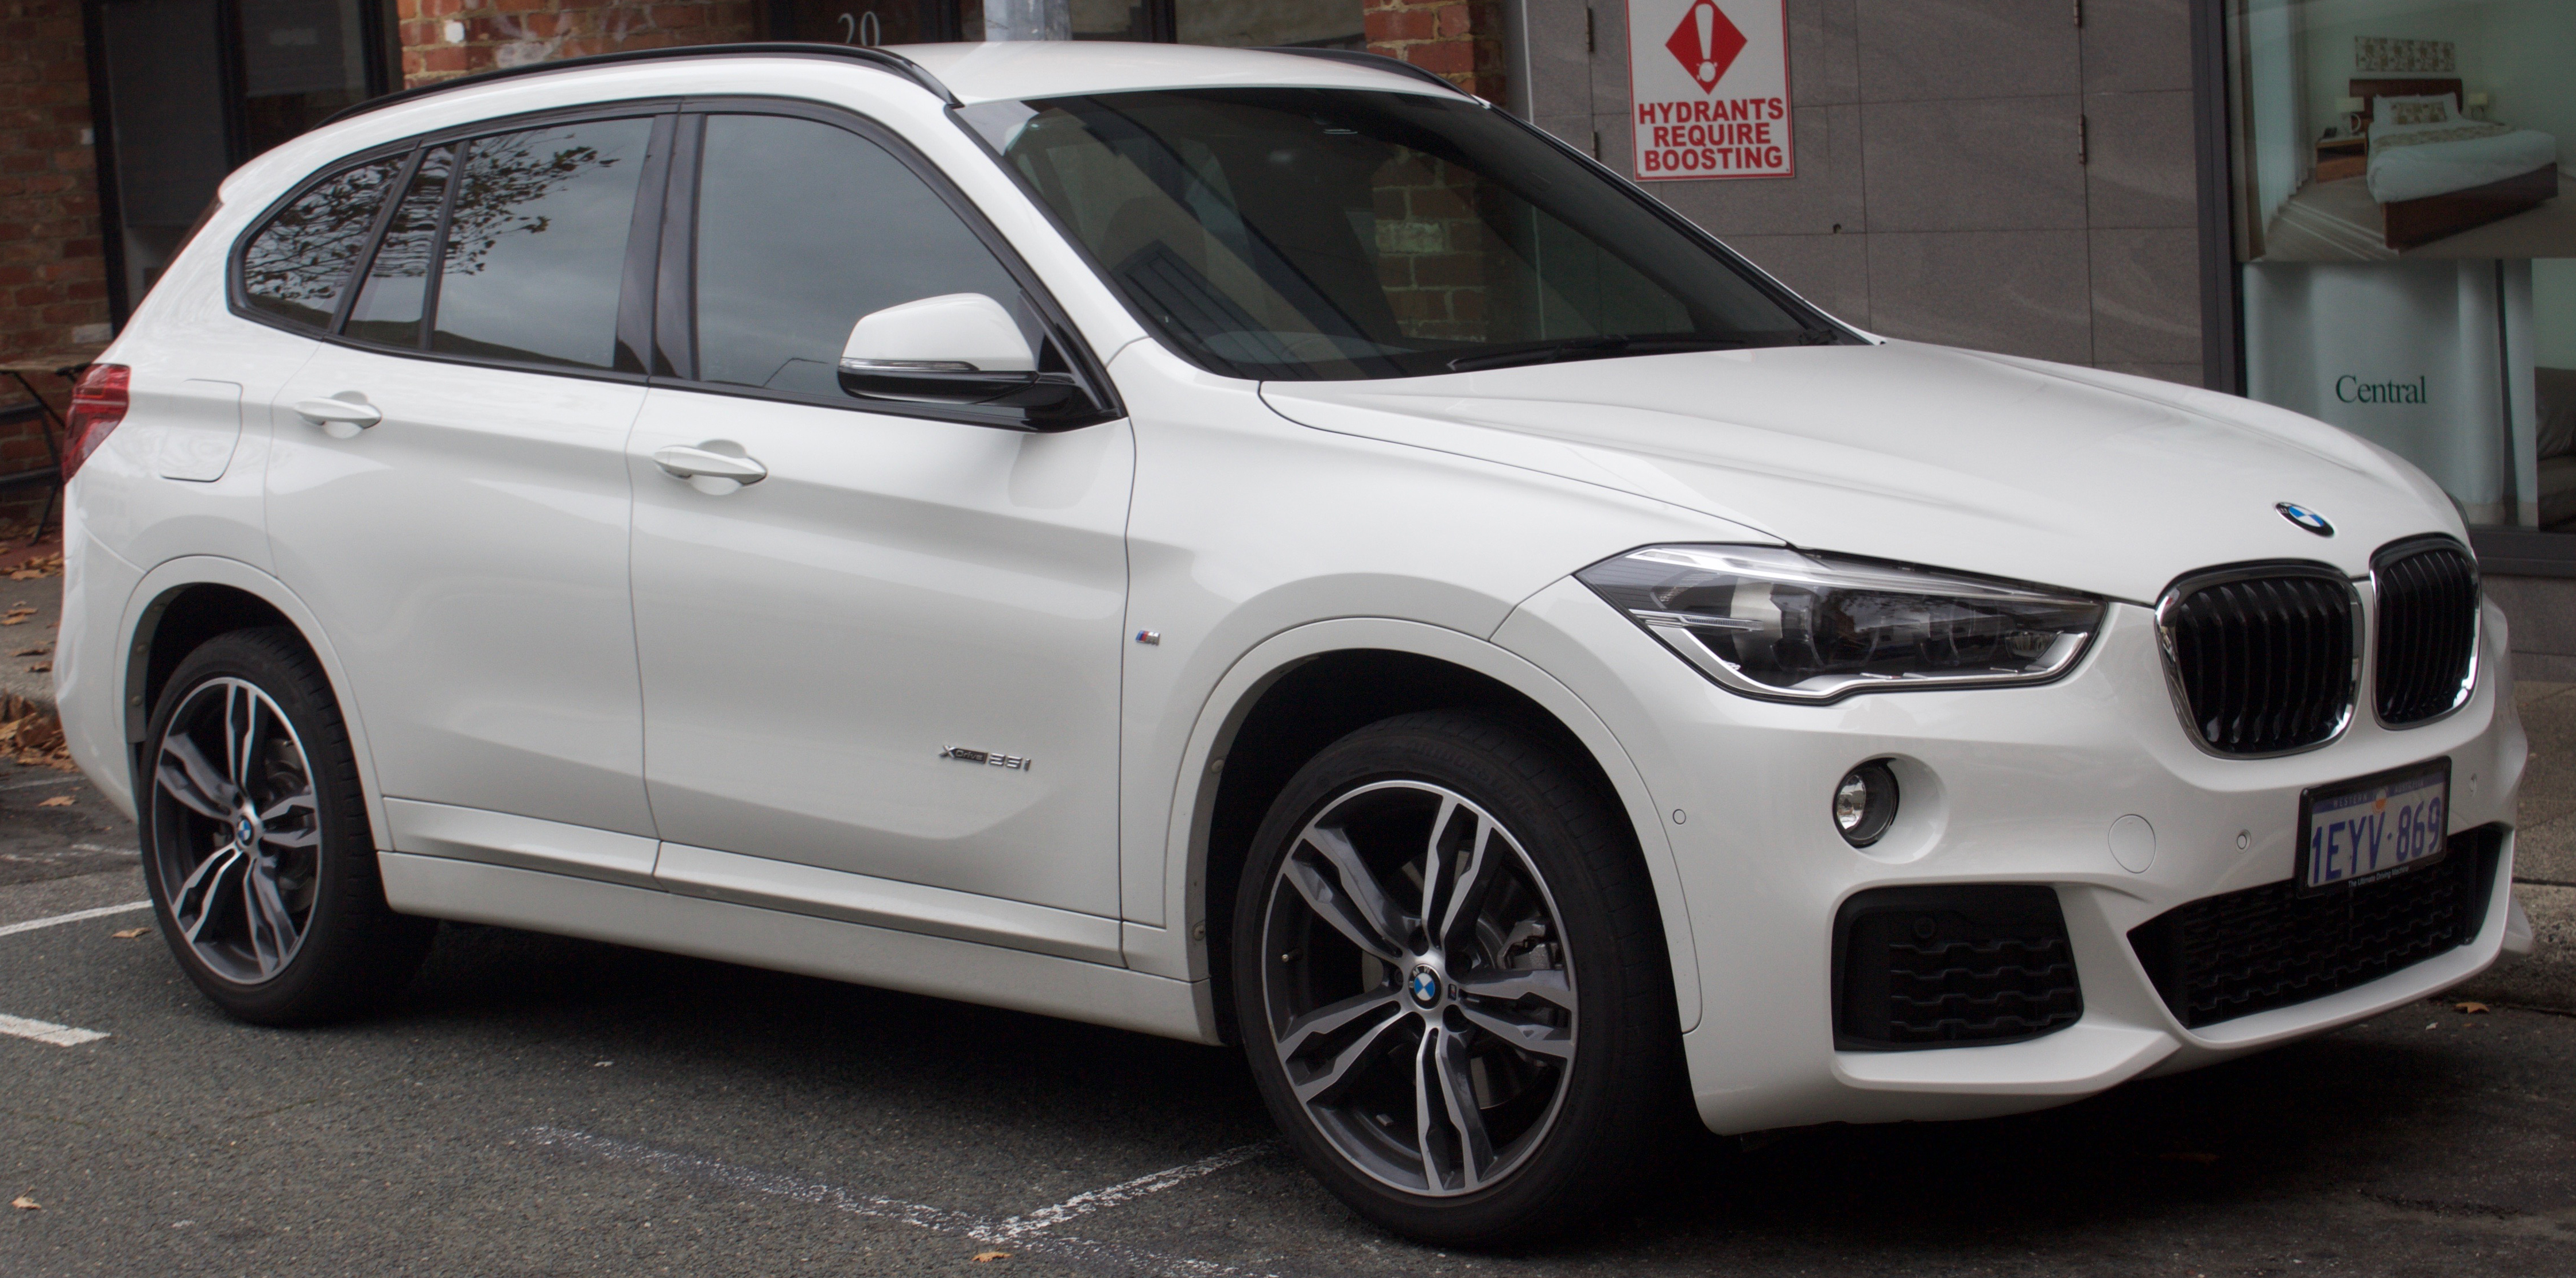 2016_BMW_X1_%28F84%29_xDrive25i_wagon_%282017 07 15%29_01 bmw x1 wikipedia  at metegol.co